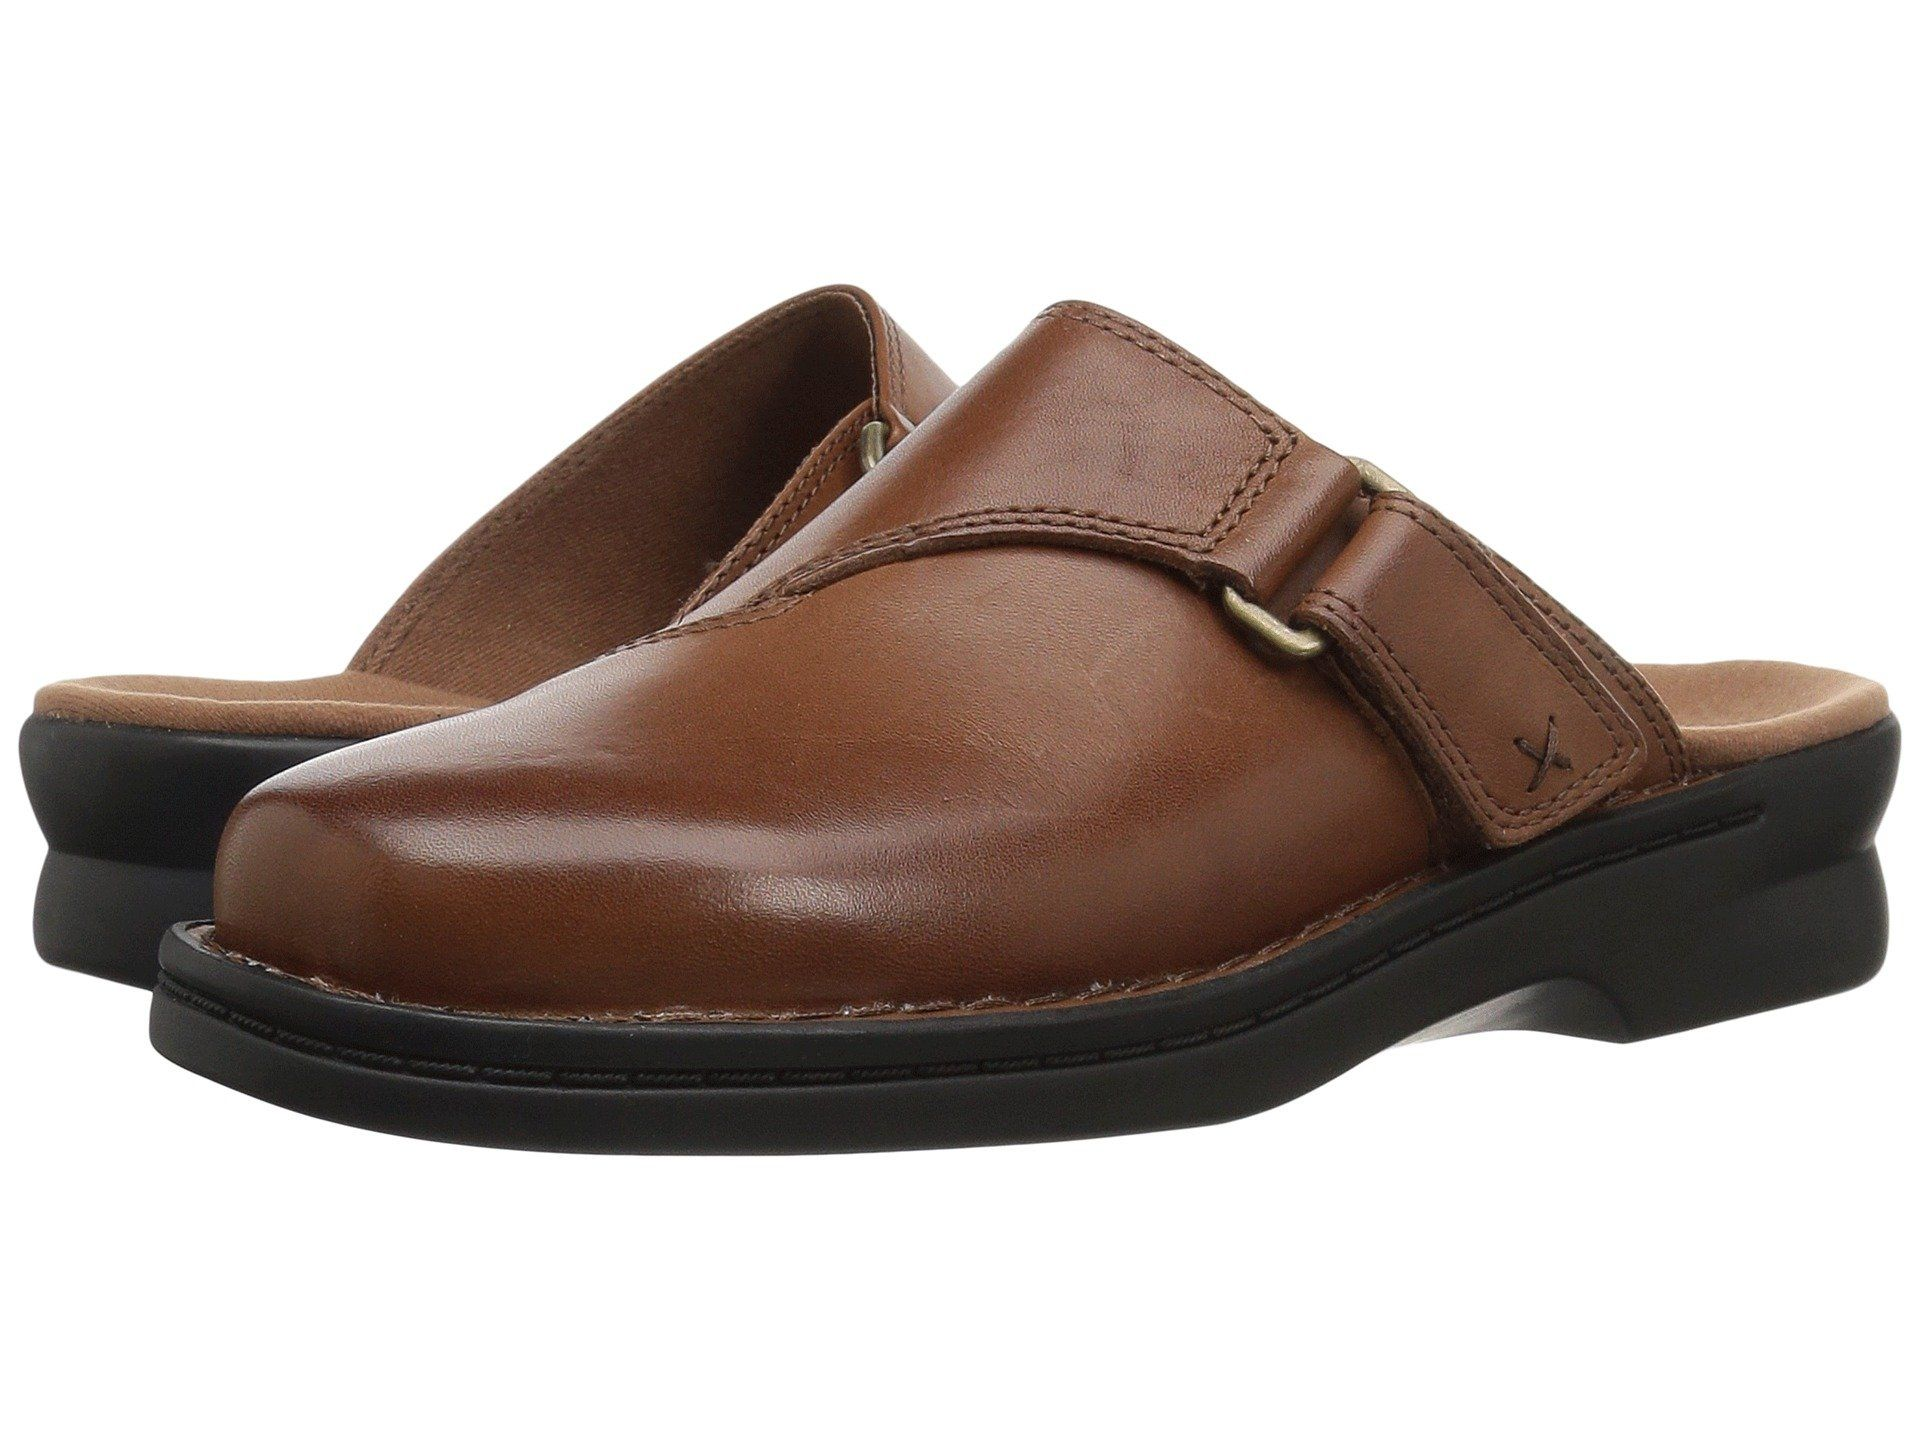 8d31caa1f7 Clarks Clarks Patty Nell Price in Egypt | Jumia | Shoes | kanbkam